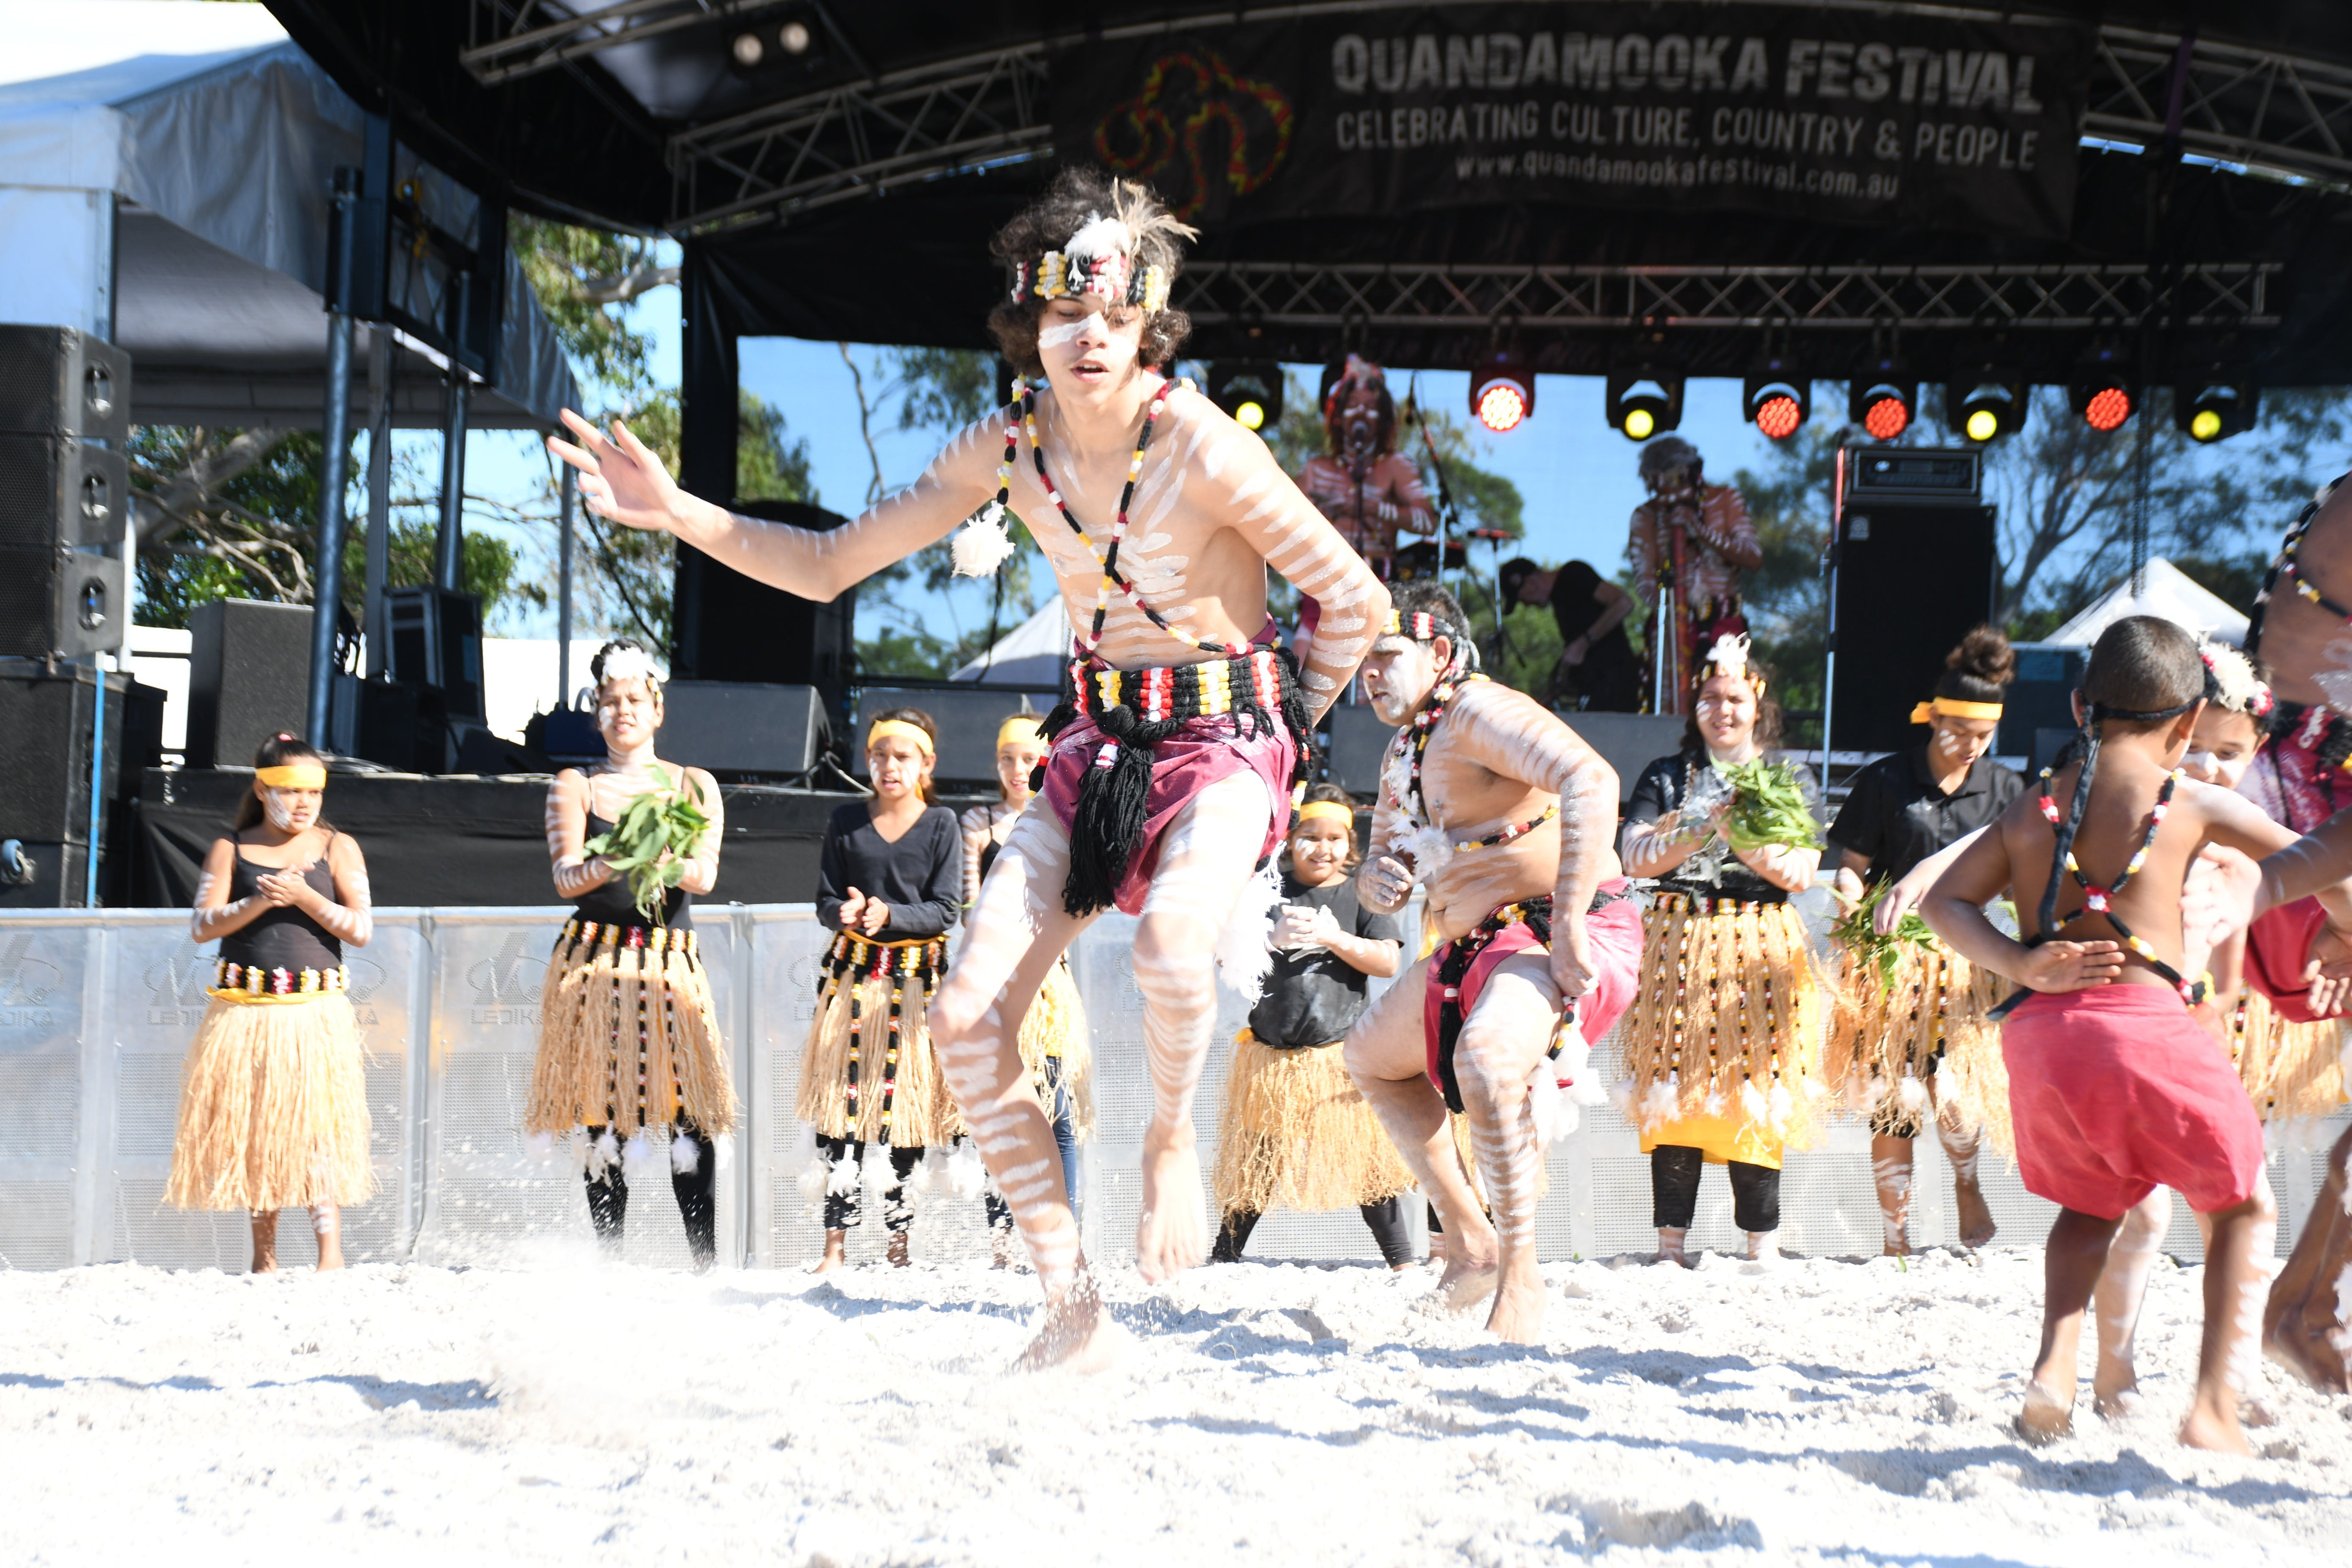 Quandamooka Festival 2021 - Mount Gambier Accommodation